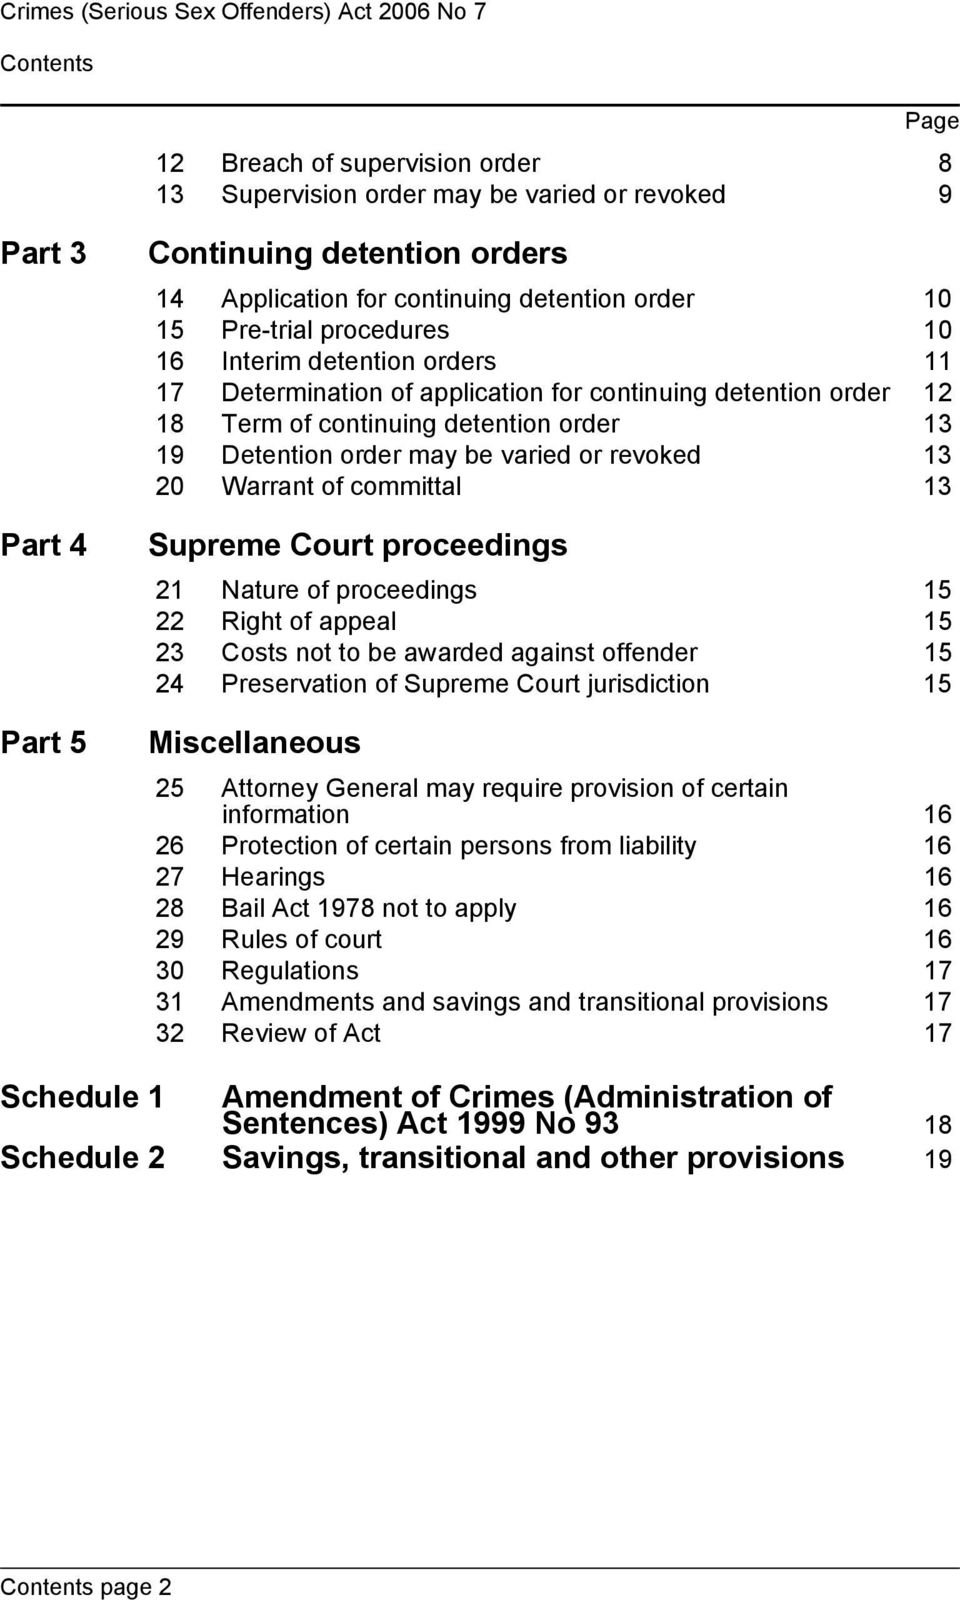 detention order 13 19 Detention order may be varied or revoked 13 20 Warrant of committal 13 Supreme Court proceedings 21 Nature of proceedings 15 22 Right of appeal 15 23 Costs not to be awarded